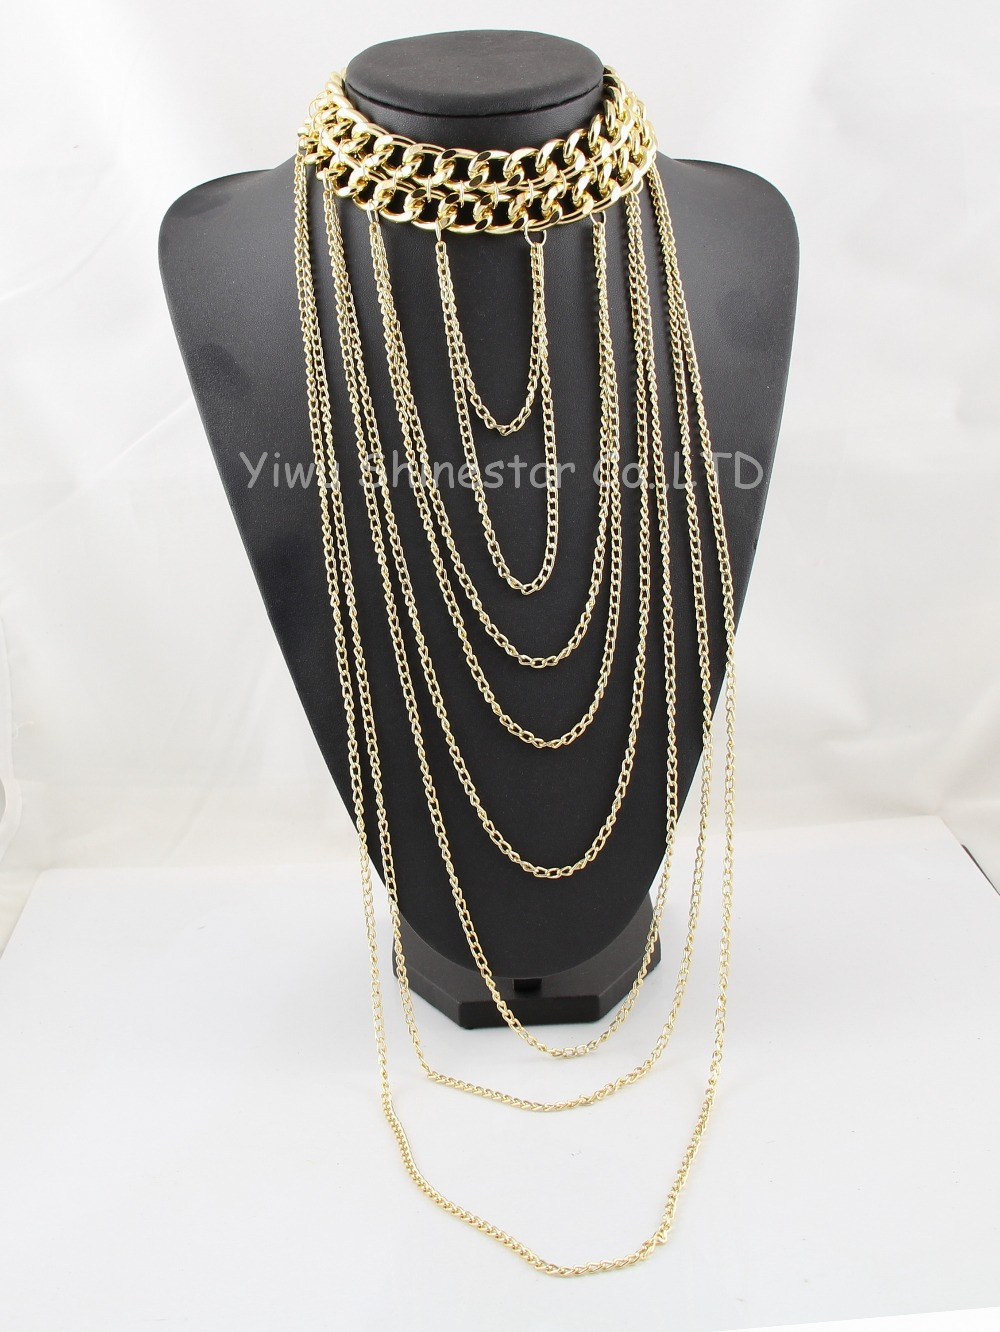 Statement Heavy Chunky Collar Gold Chain Necklace Multilayer Long Tassel Body Chain Necklace For Women Dress Jewelry Item,B89(China (Mainland))